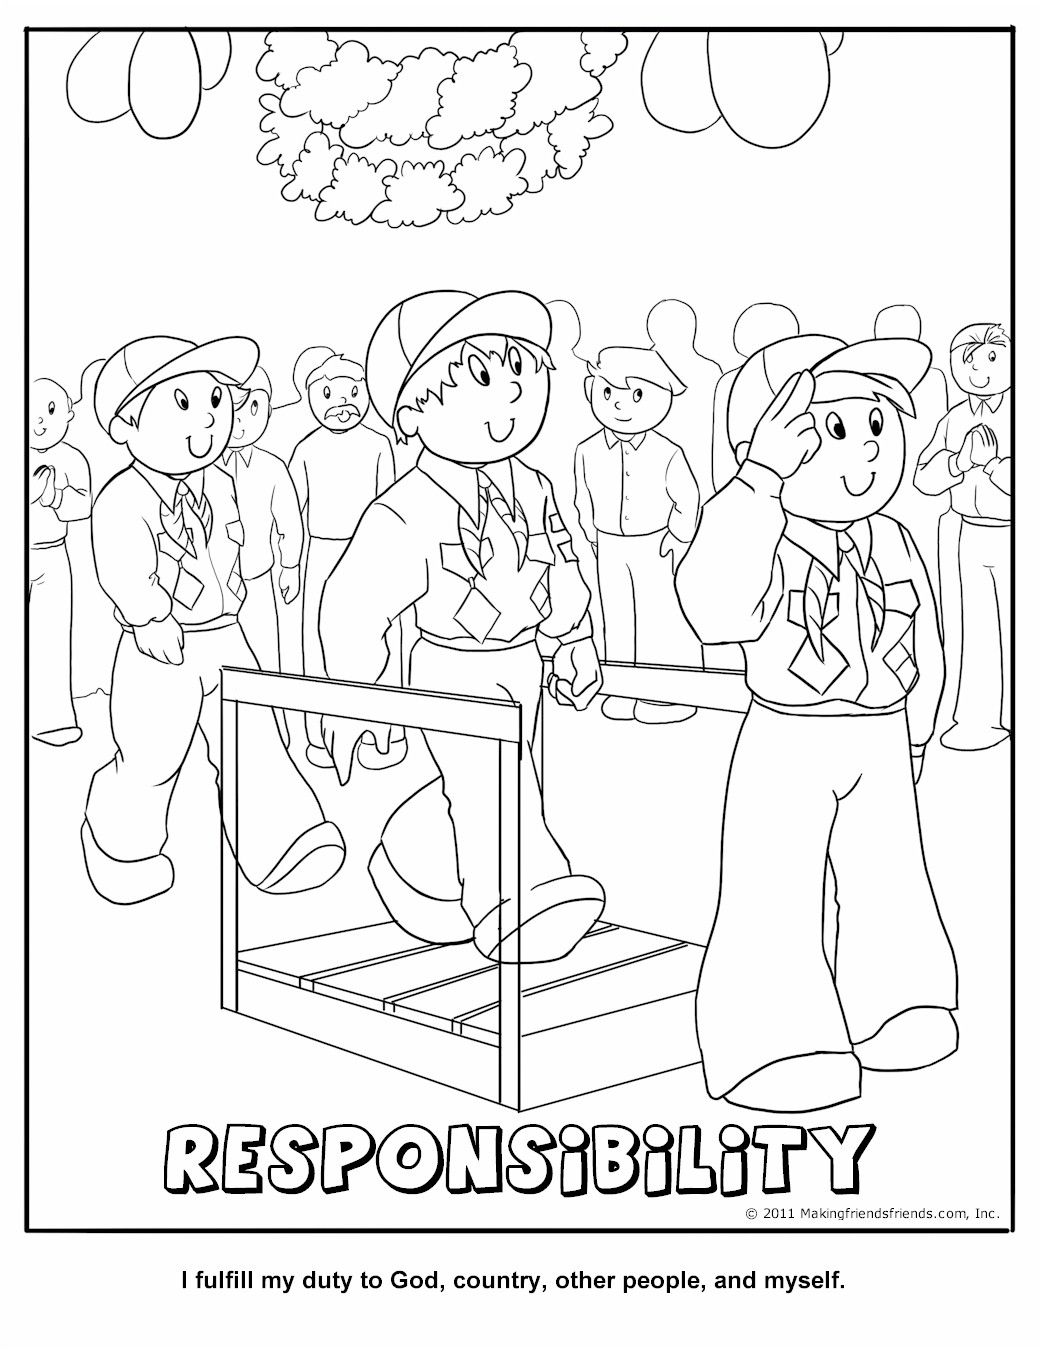 Responsibility Coloring Page Wolf Cub Achievement 9a